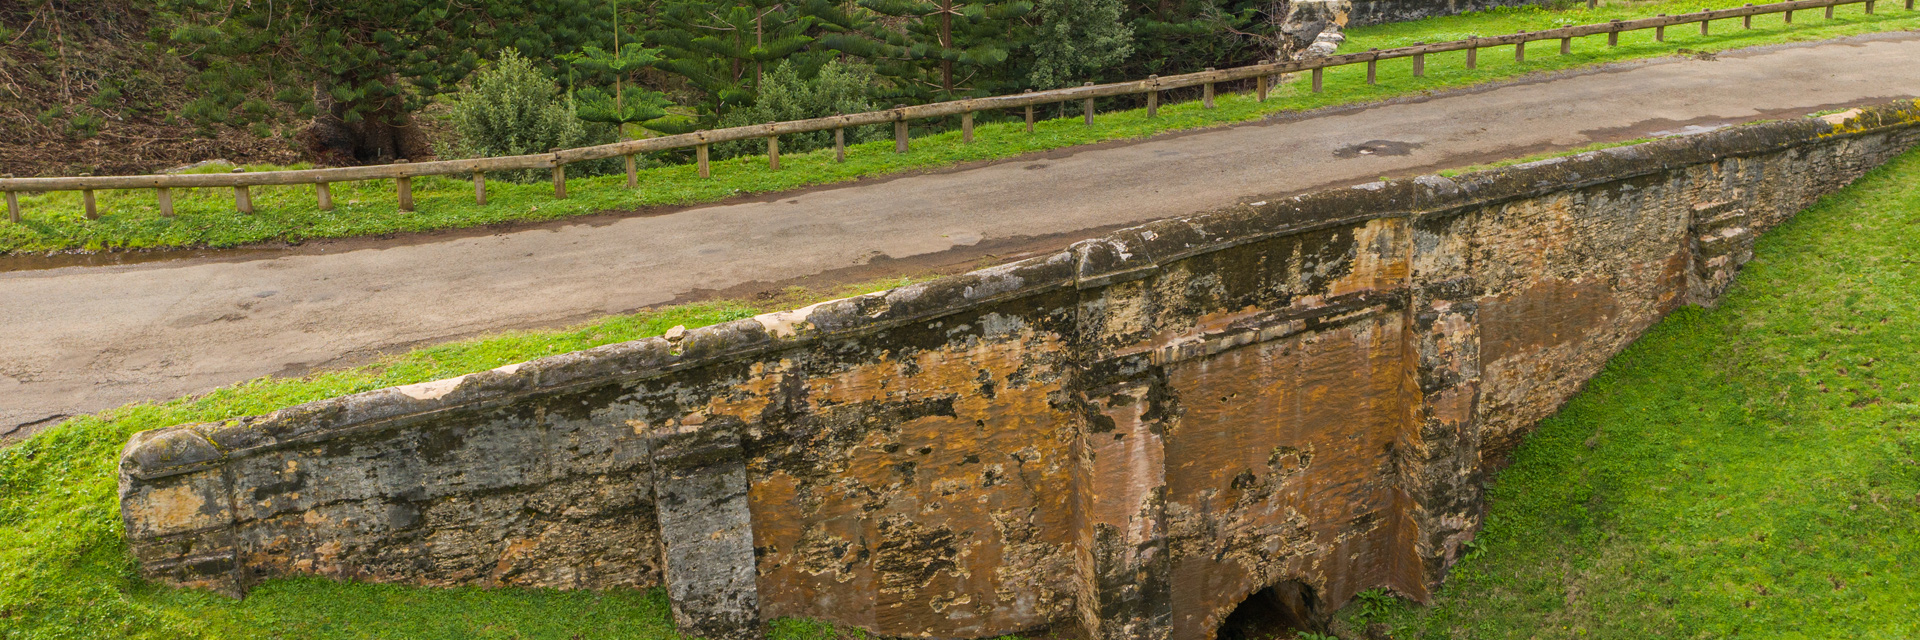 Side view of historic stone bridge, Bloody Bridge, fenced on one side and surrounded by sloping grass and pine trees.